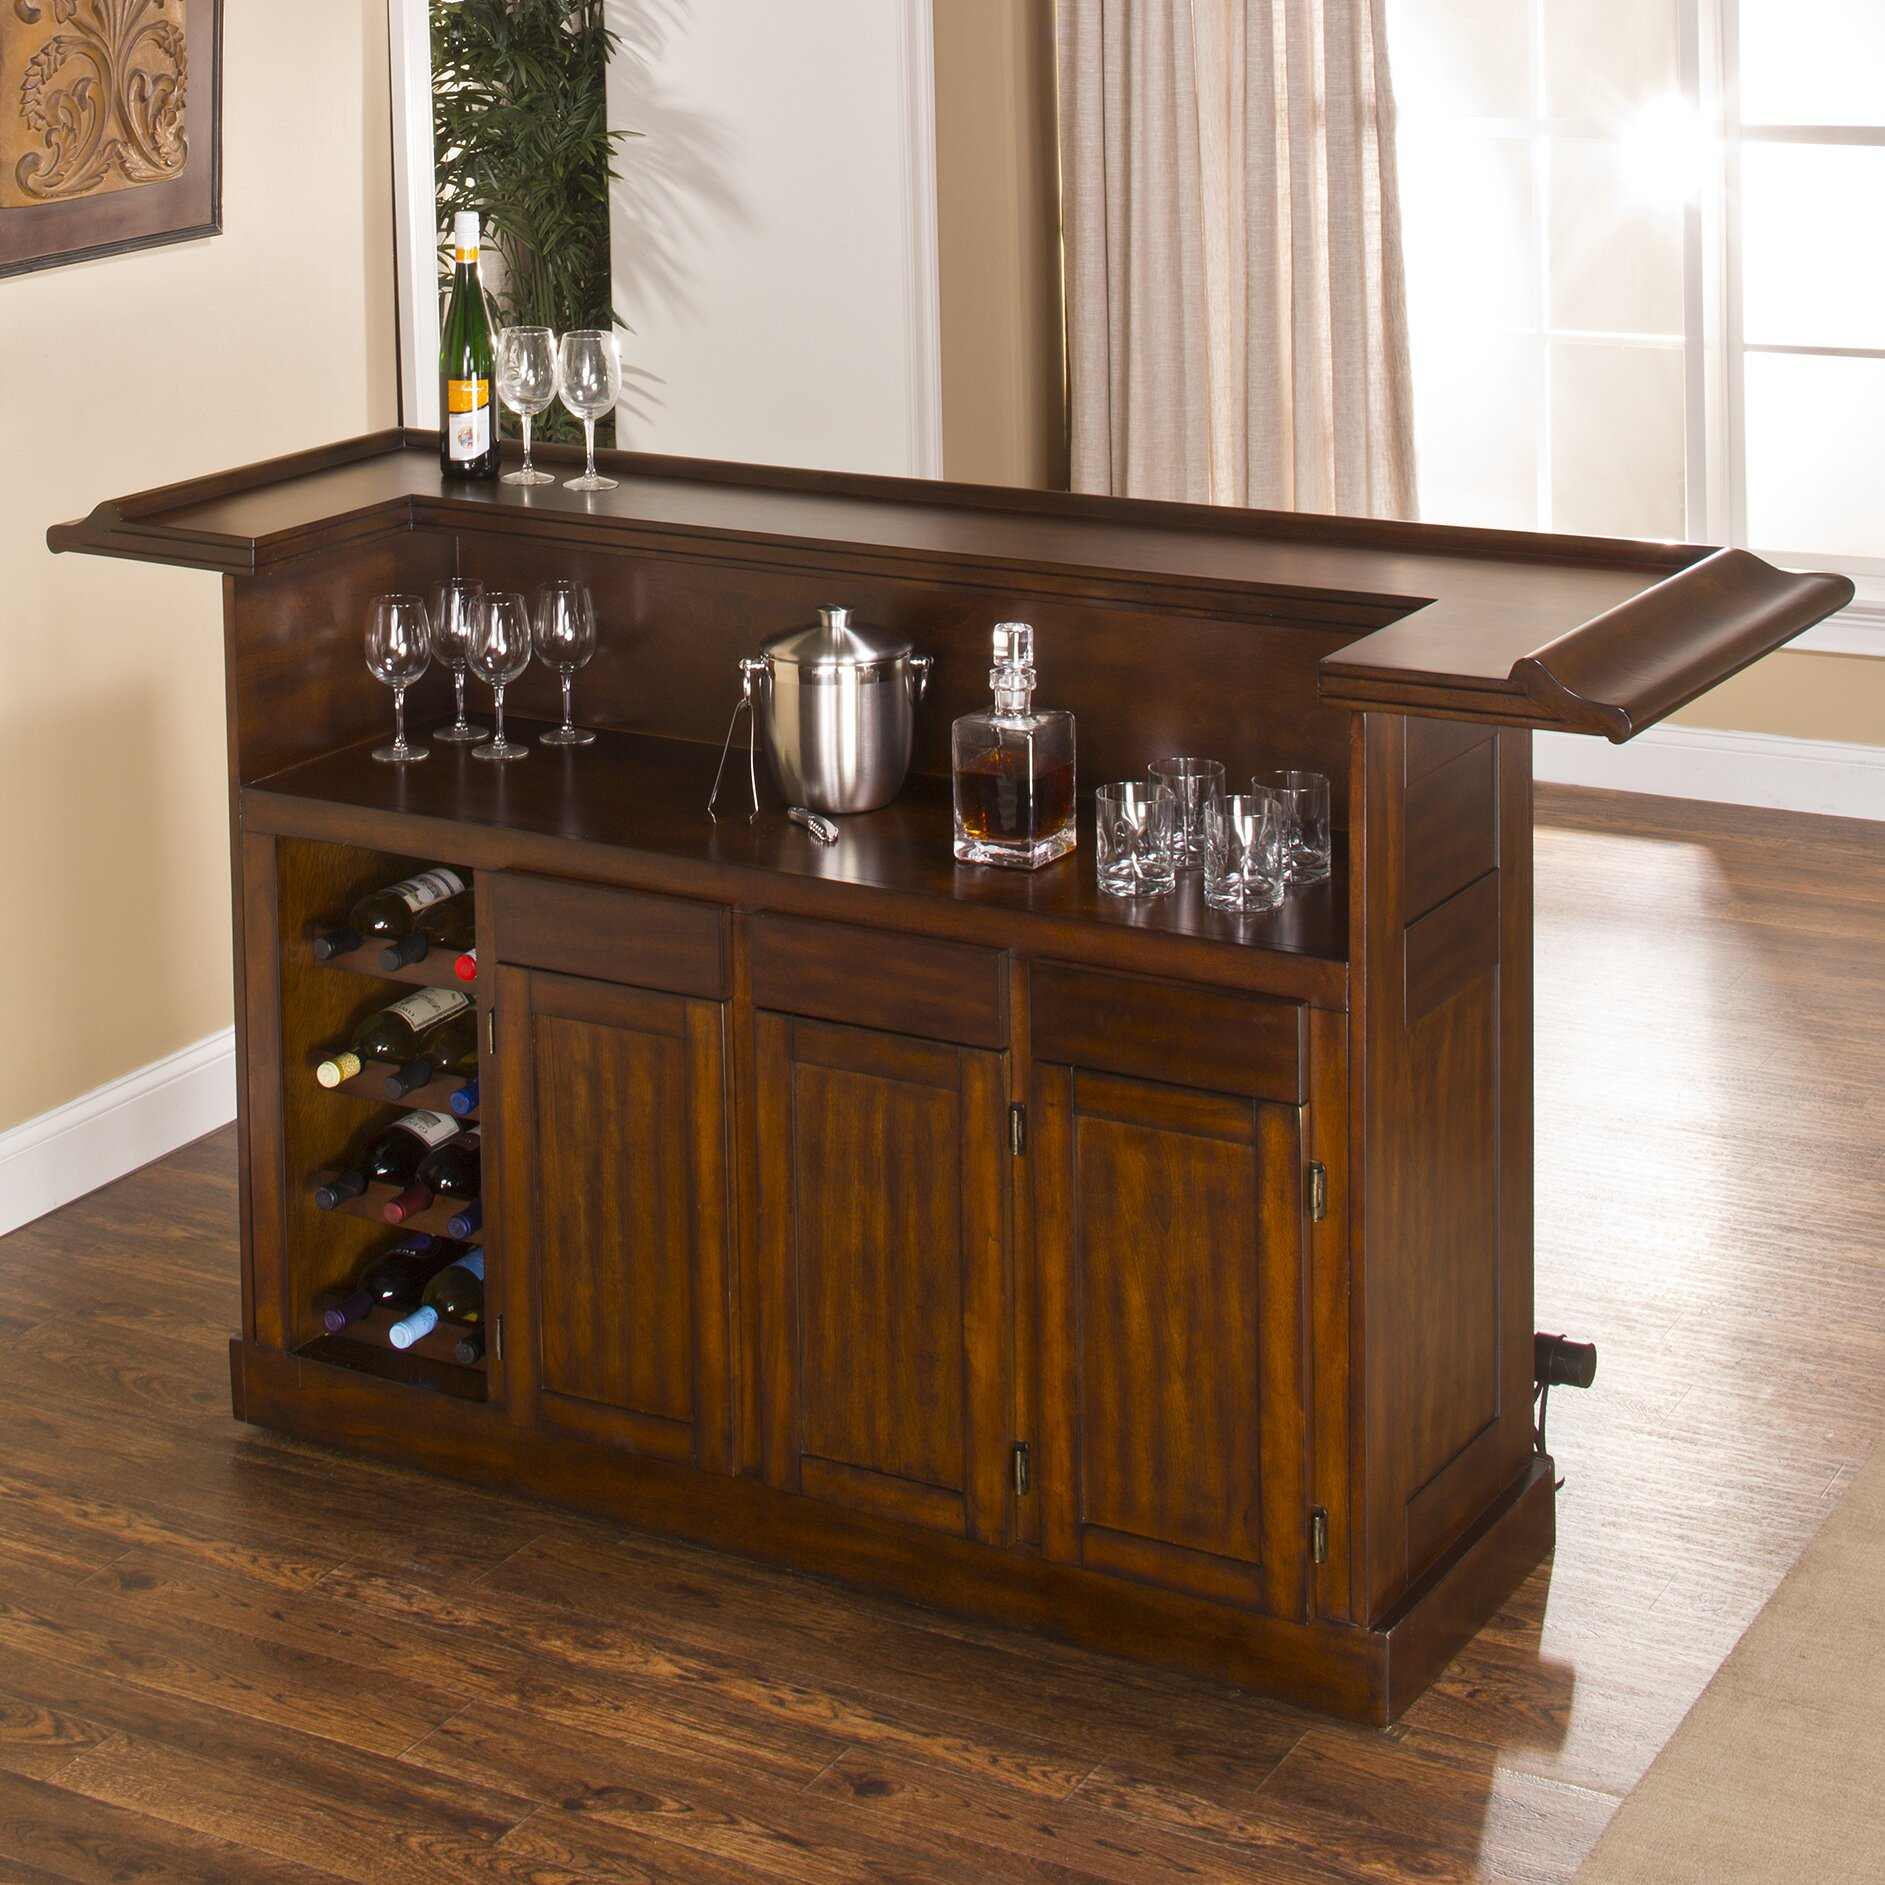 Darby Home Co Danton Bar With Wine Storage & Reviews